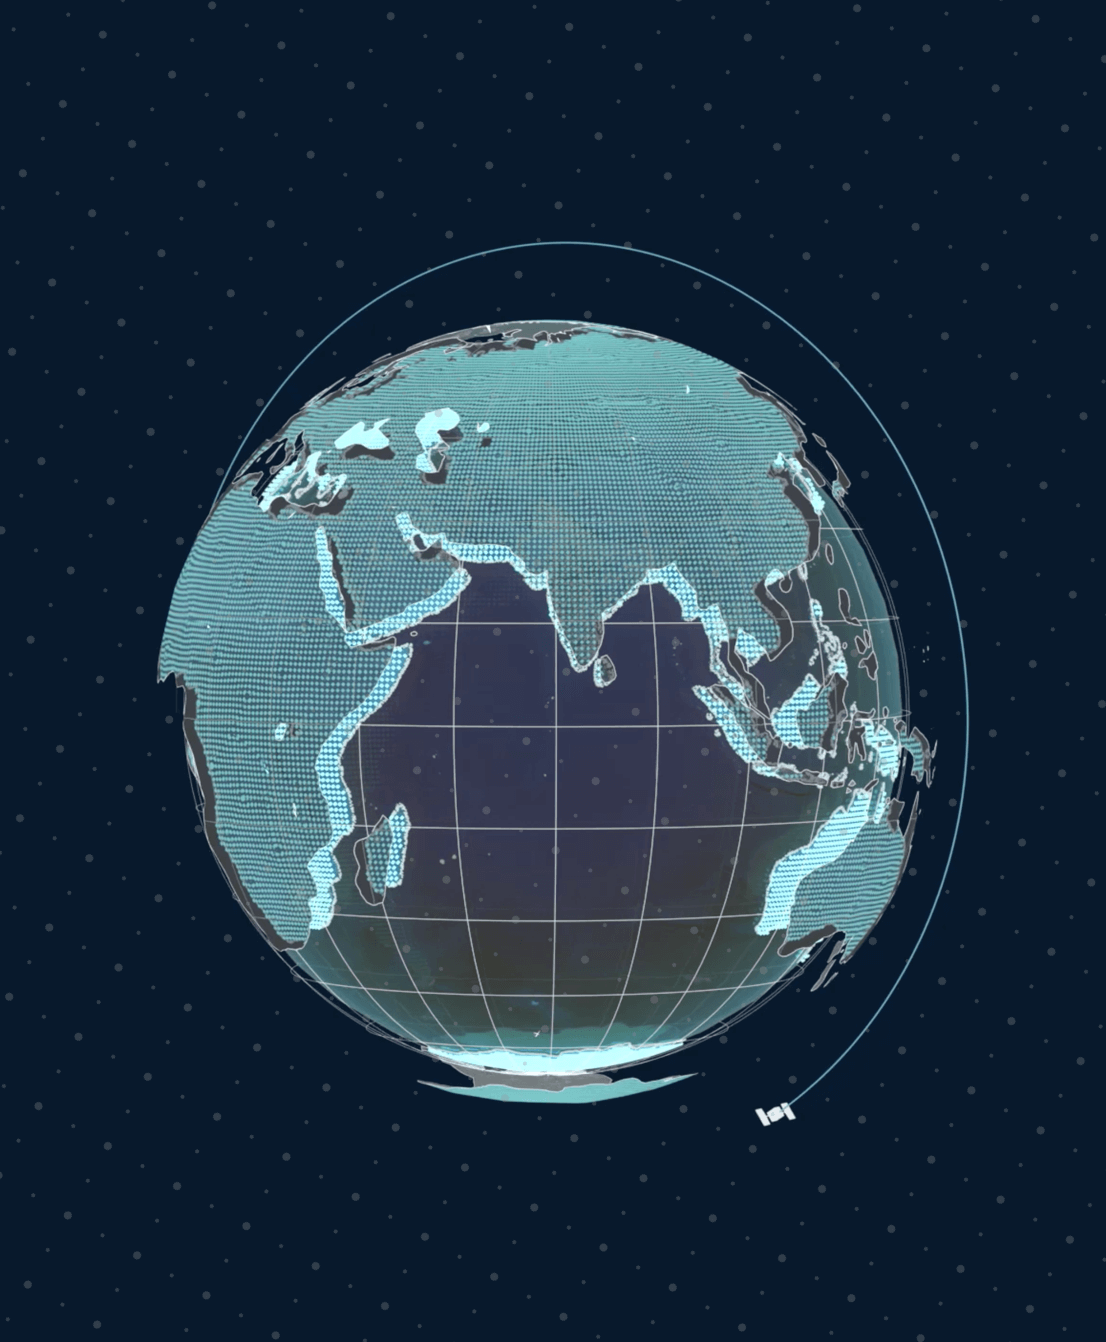 A 3D render of a globe used on the homepage